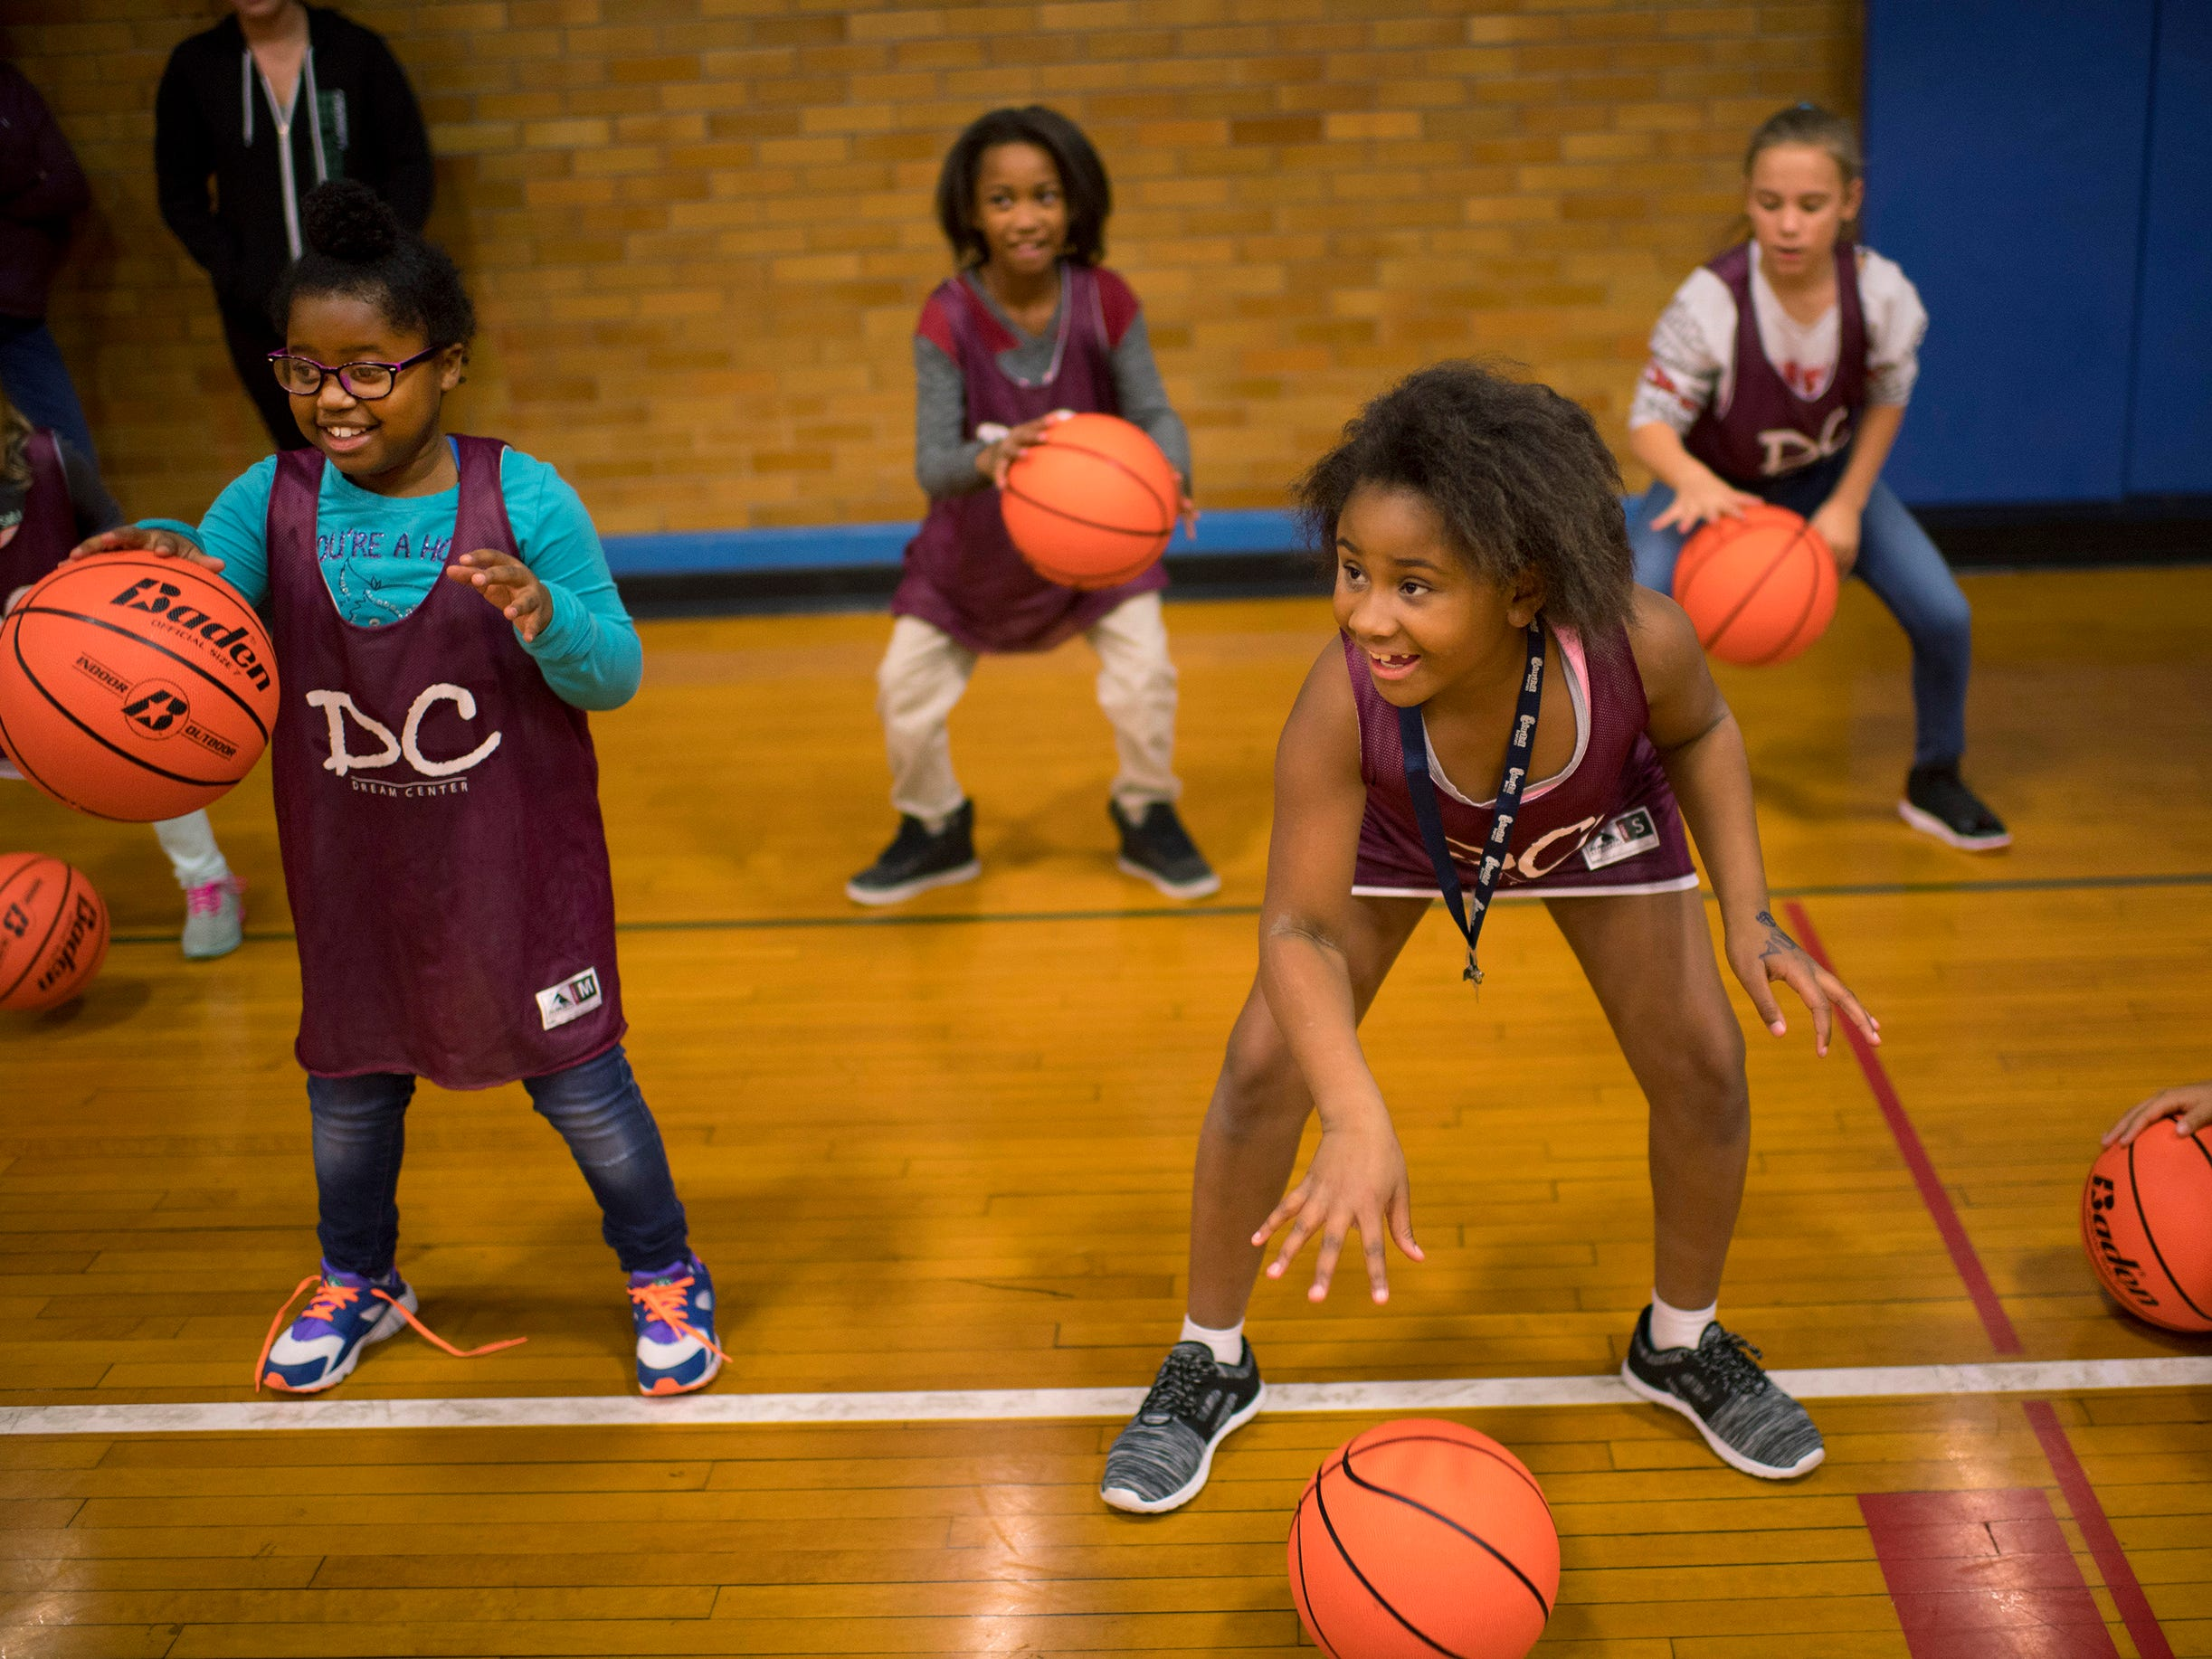 Delmyiah White, 9, left, and Natasha Winstead, 9, get their dribble on at the Ohio Valley Conference Basketball Youth Clinic at the Downtown YMCA Monday afternoon, Oct. 22, 2018.